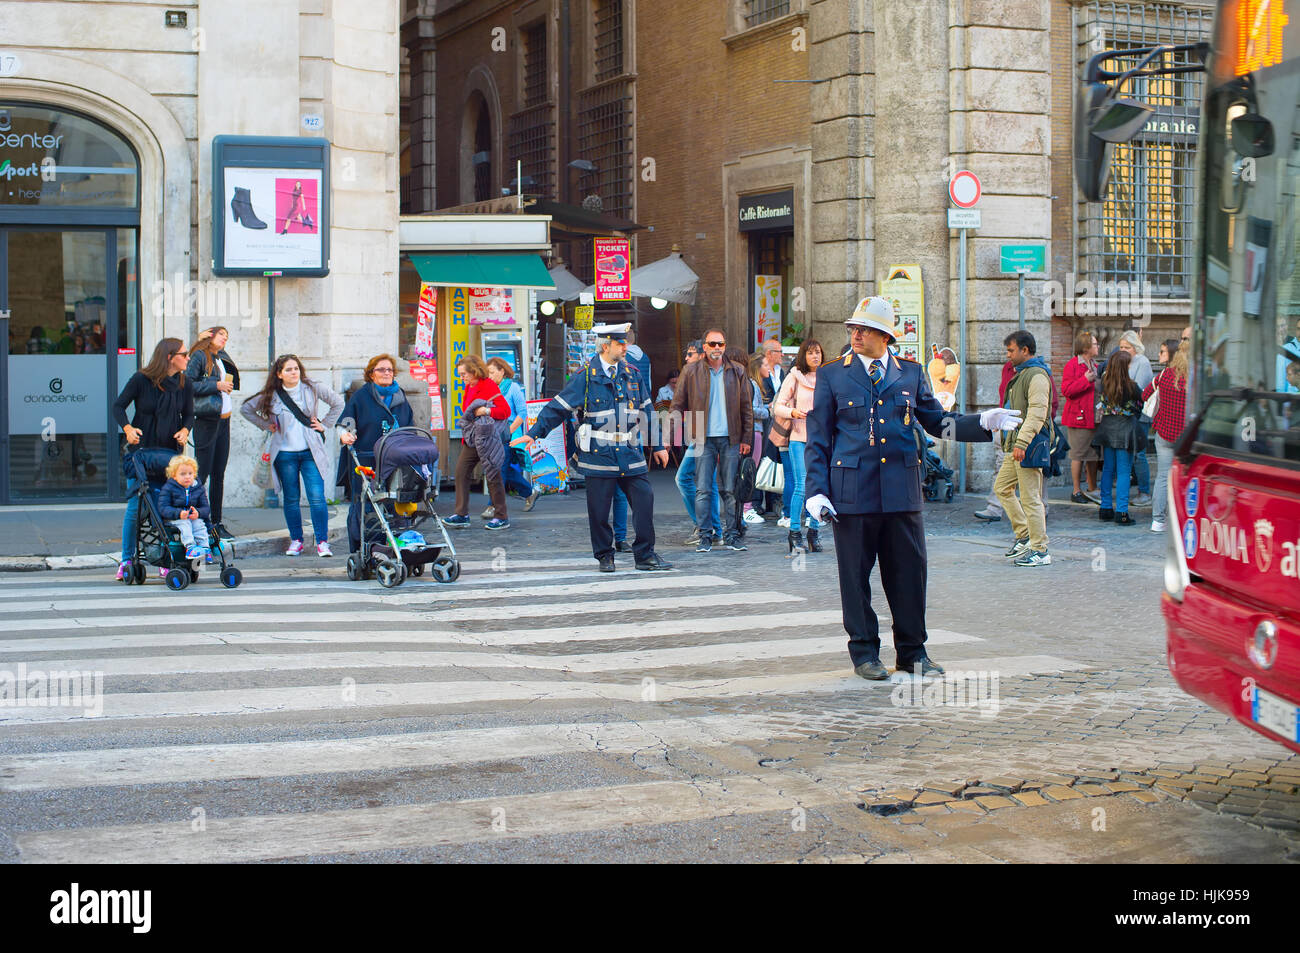 Road policeman regulate traffic in Old Town of Rome. Italy. - Stock Image